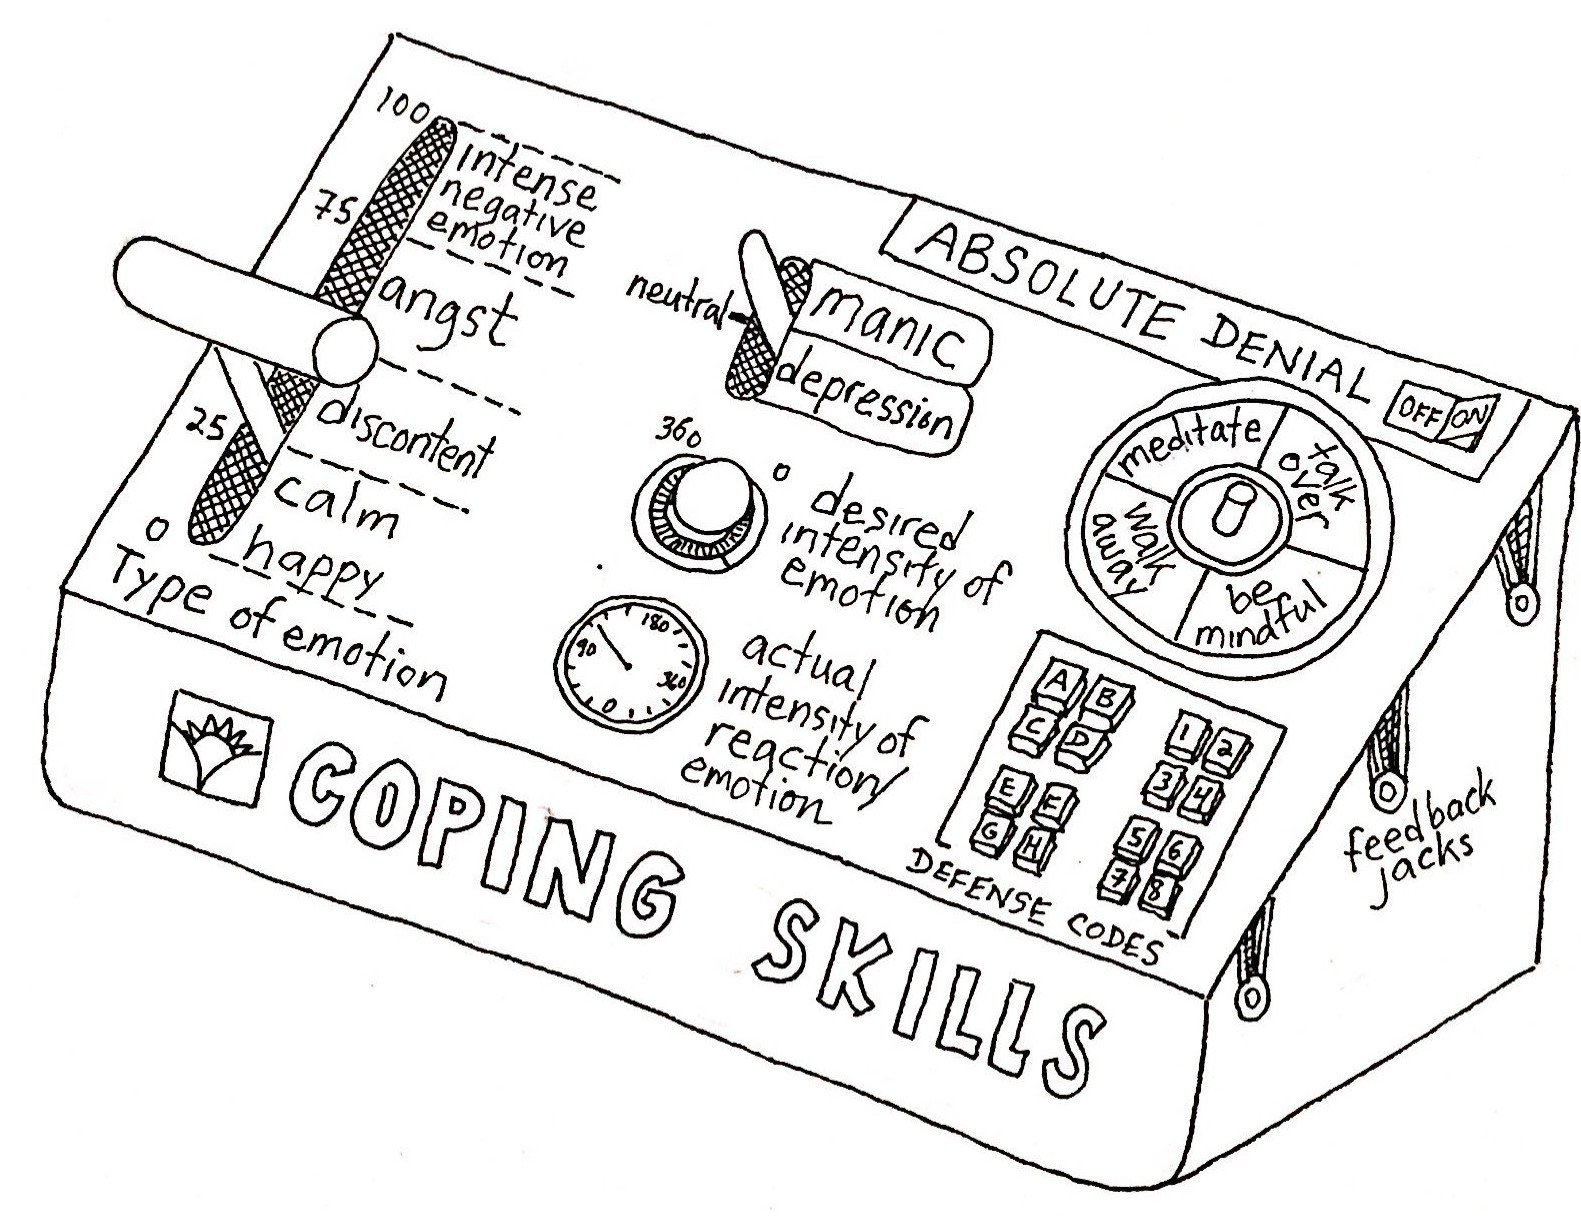 Coping skill apparatus